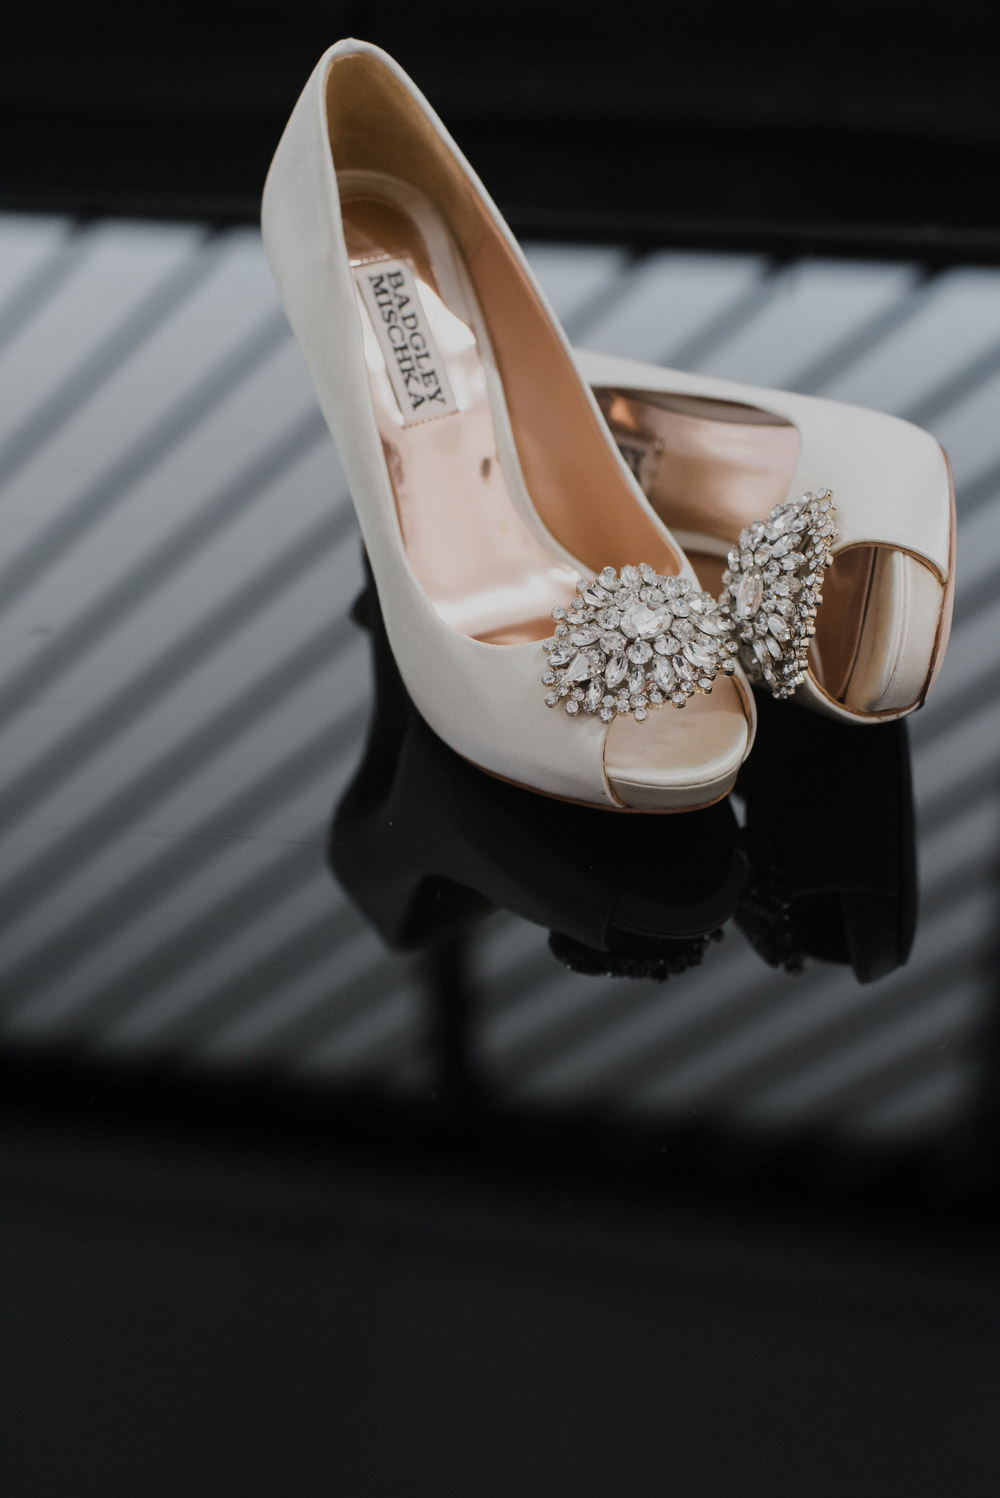 Badgley Mischka bridal shoes. Smittenpixels Photography. www.theweddingnotebook.com